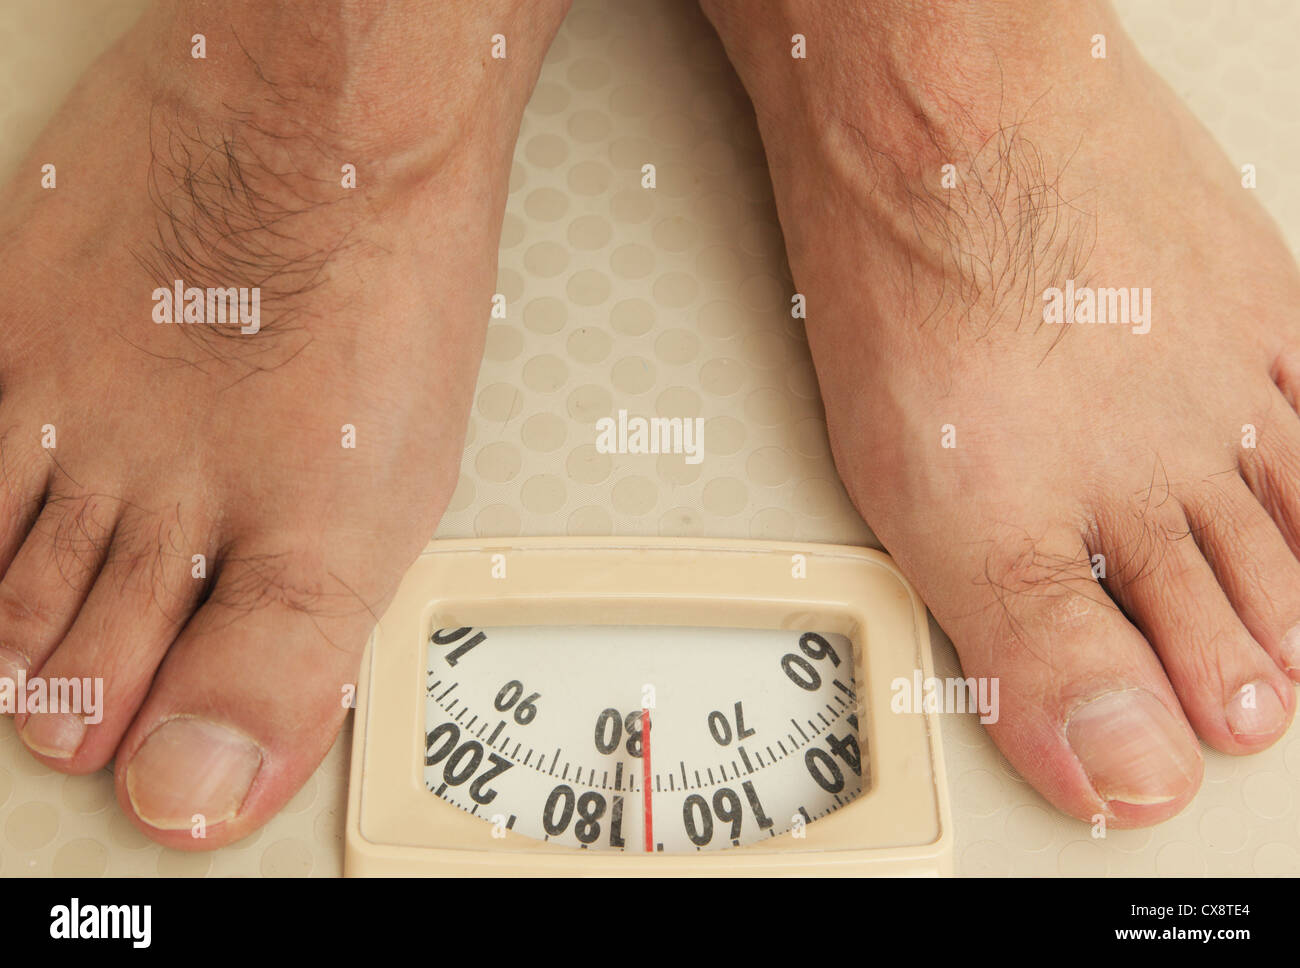 Man on a bathroom scale - Stock Image